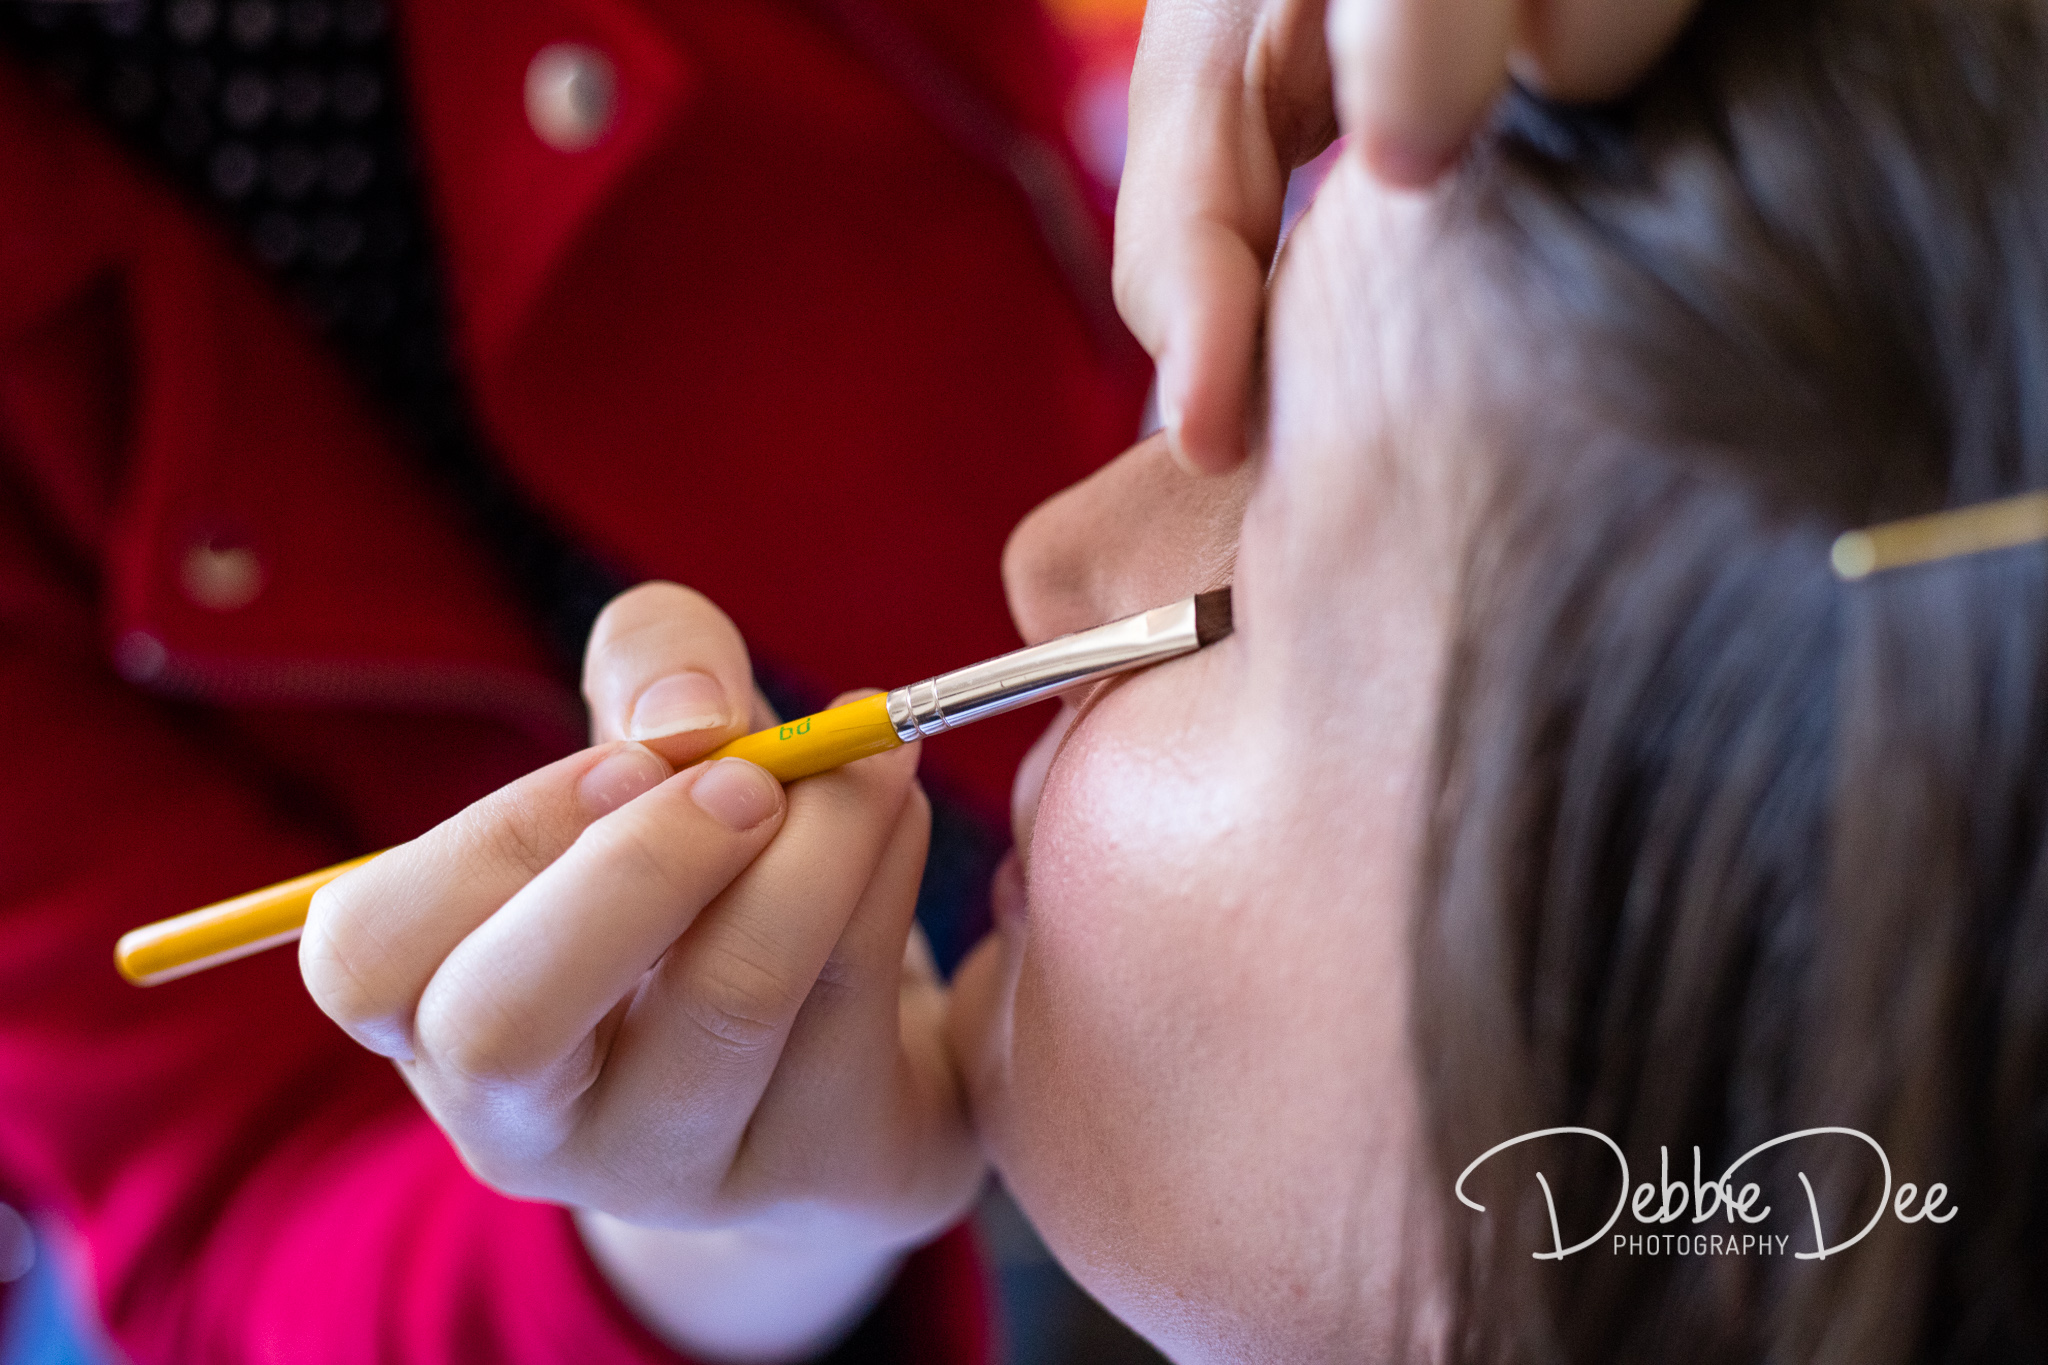 Aberdeenshire Maternity Photography Session - Make-up by Tiffany Dawson Make-Up Artistry - eye make up being applied